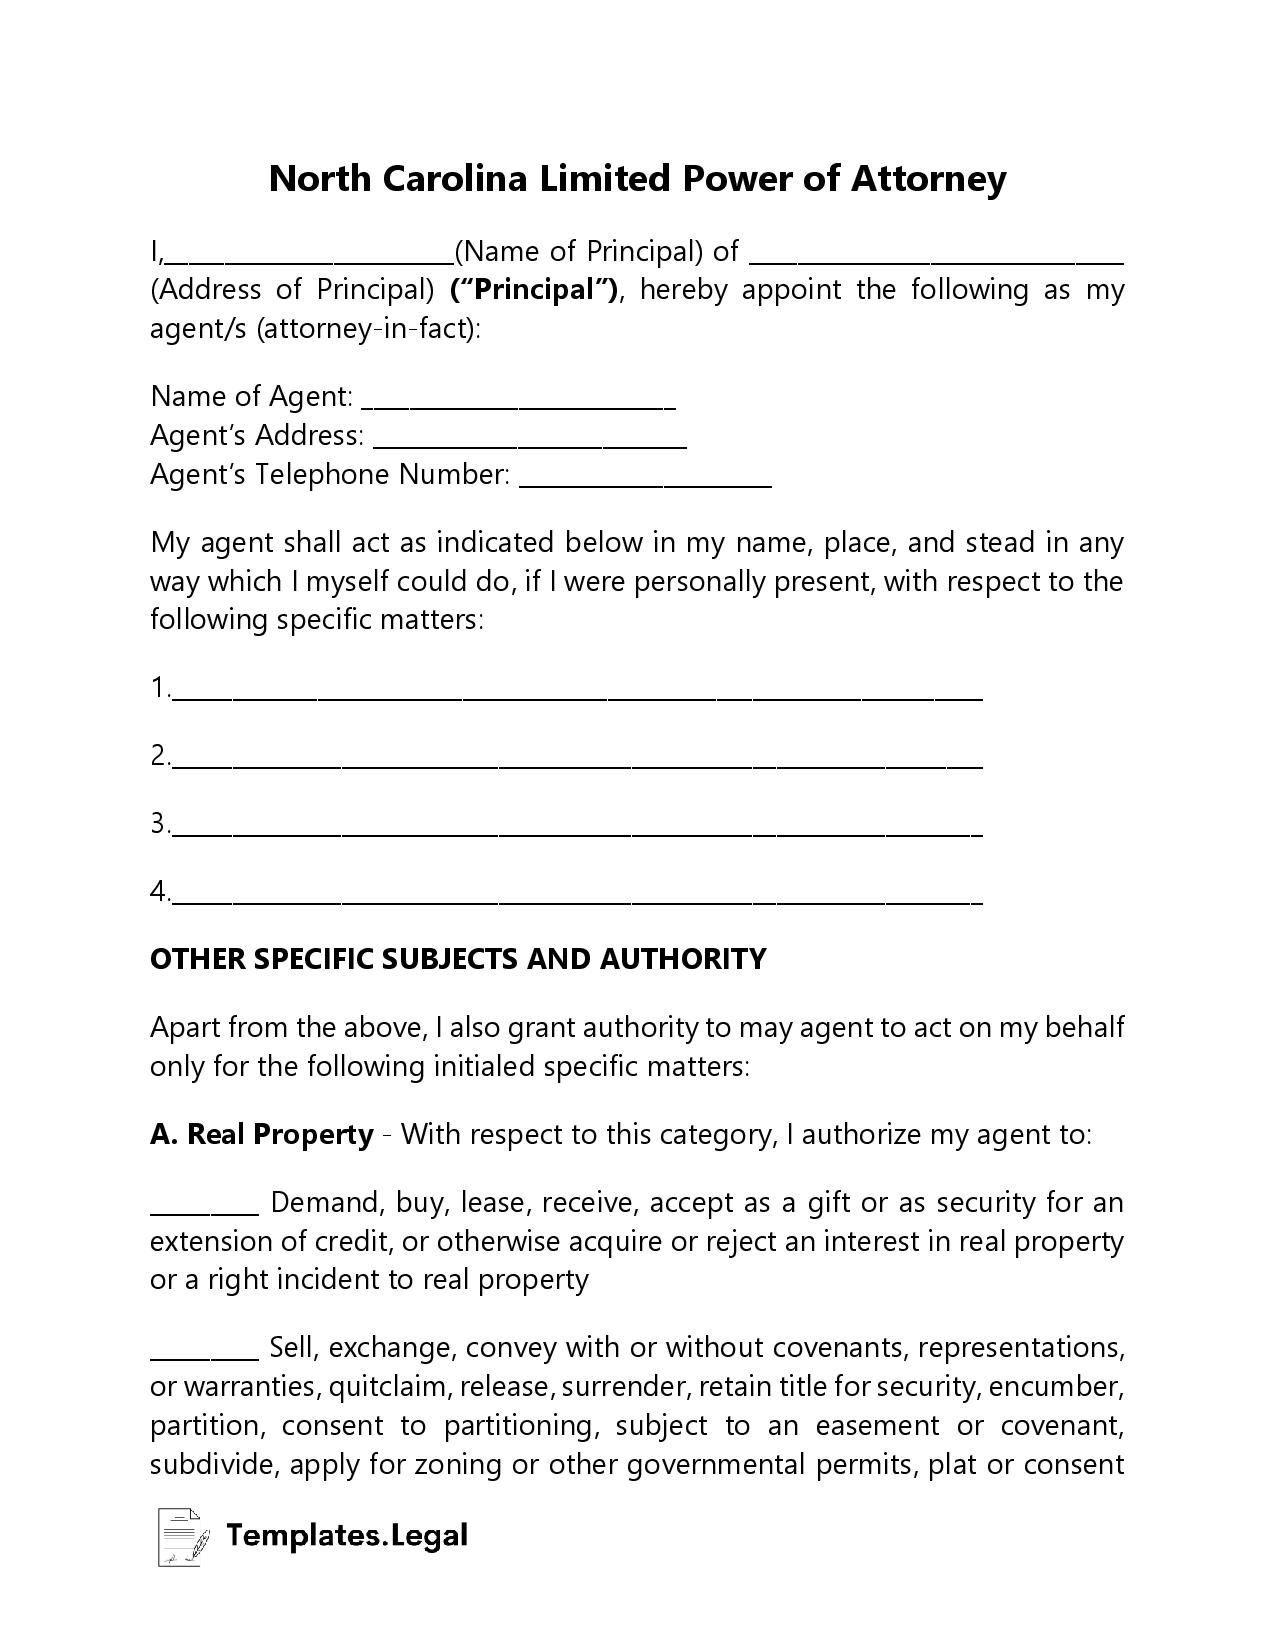 North Carolina Limited Power of Attorney - Templates.Legal